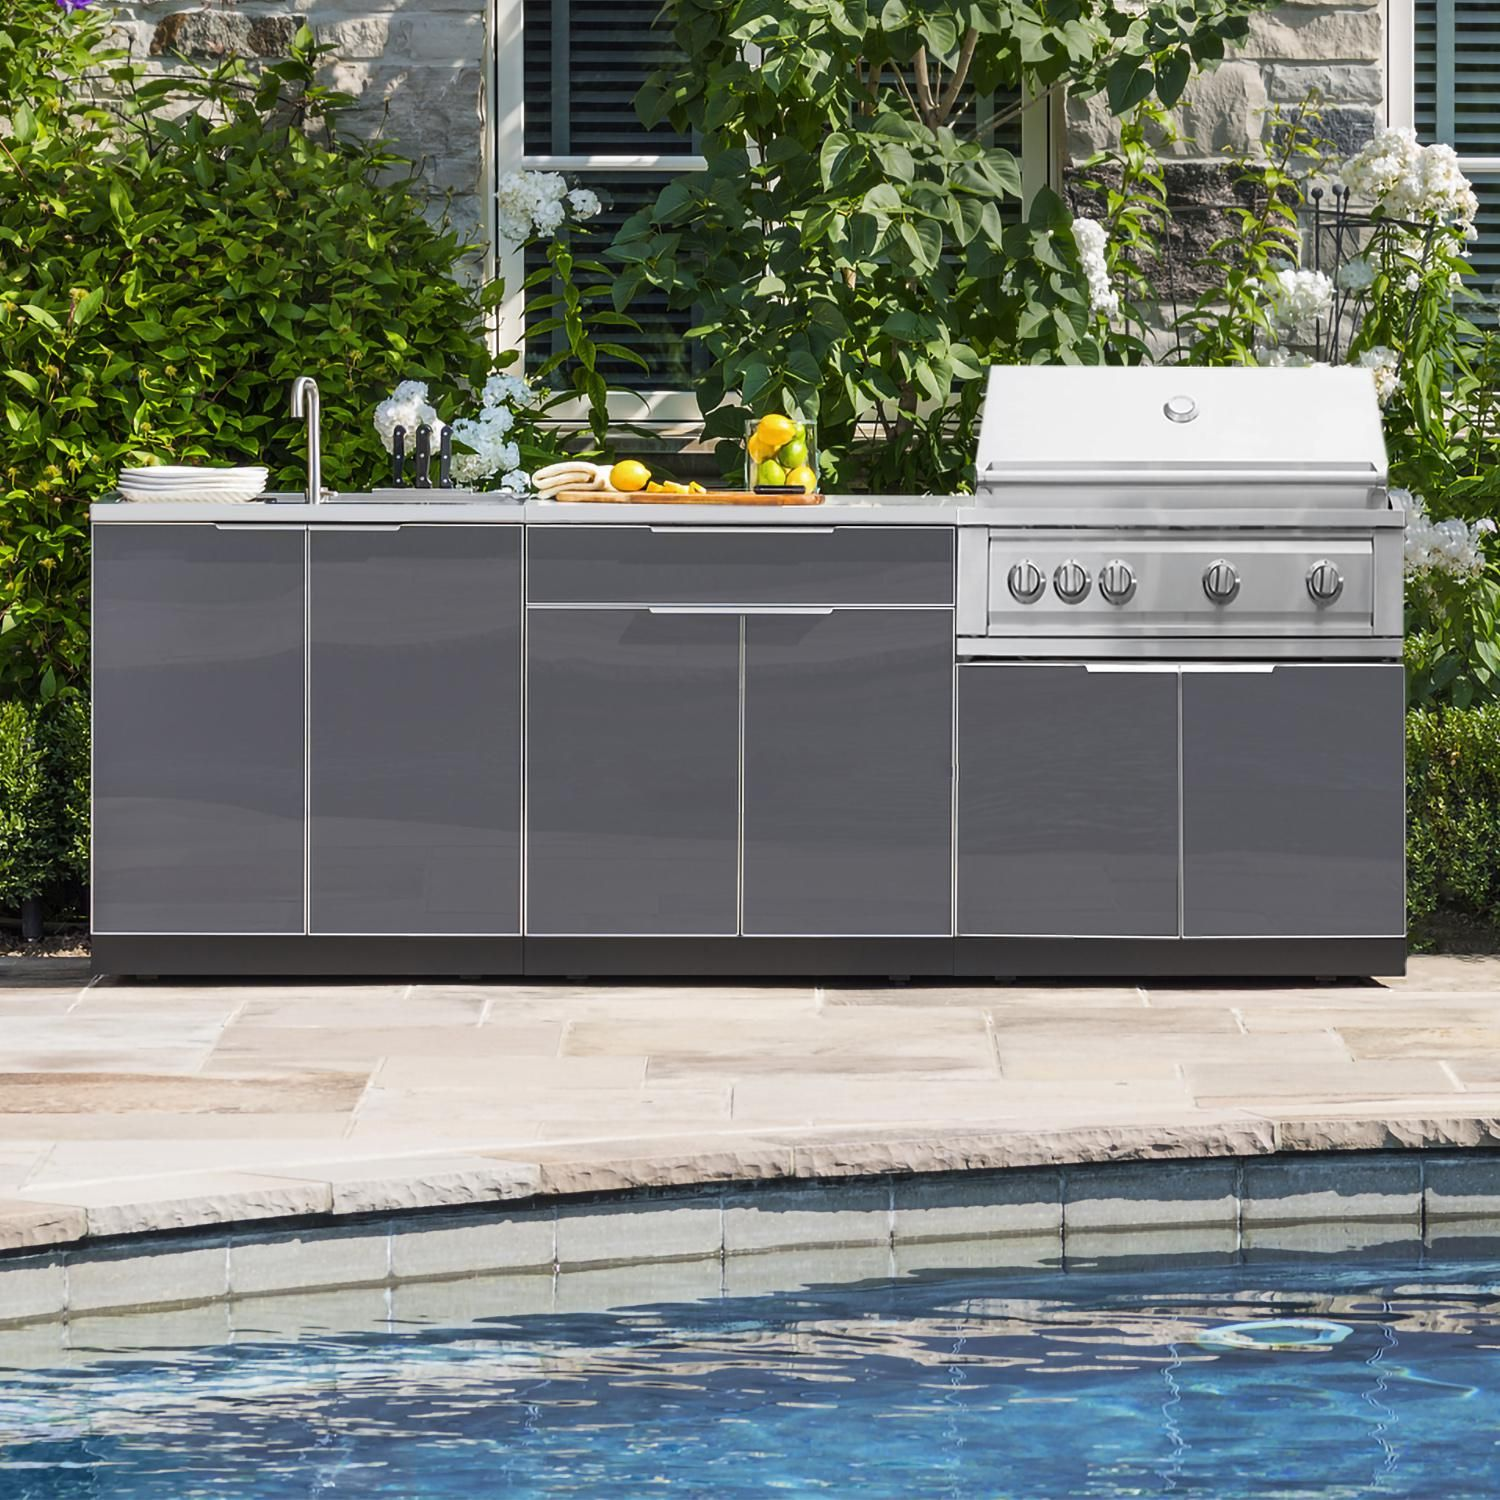 Newage Outdoor Kitchen 4 Piece Set With 33 Inch Insert Grill Cabinet Sink Bar Center And Cover Slate Gray 65277 Outdoor Kitchen Modern Outdoor Kitchen Outdoor Kitchen Island